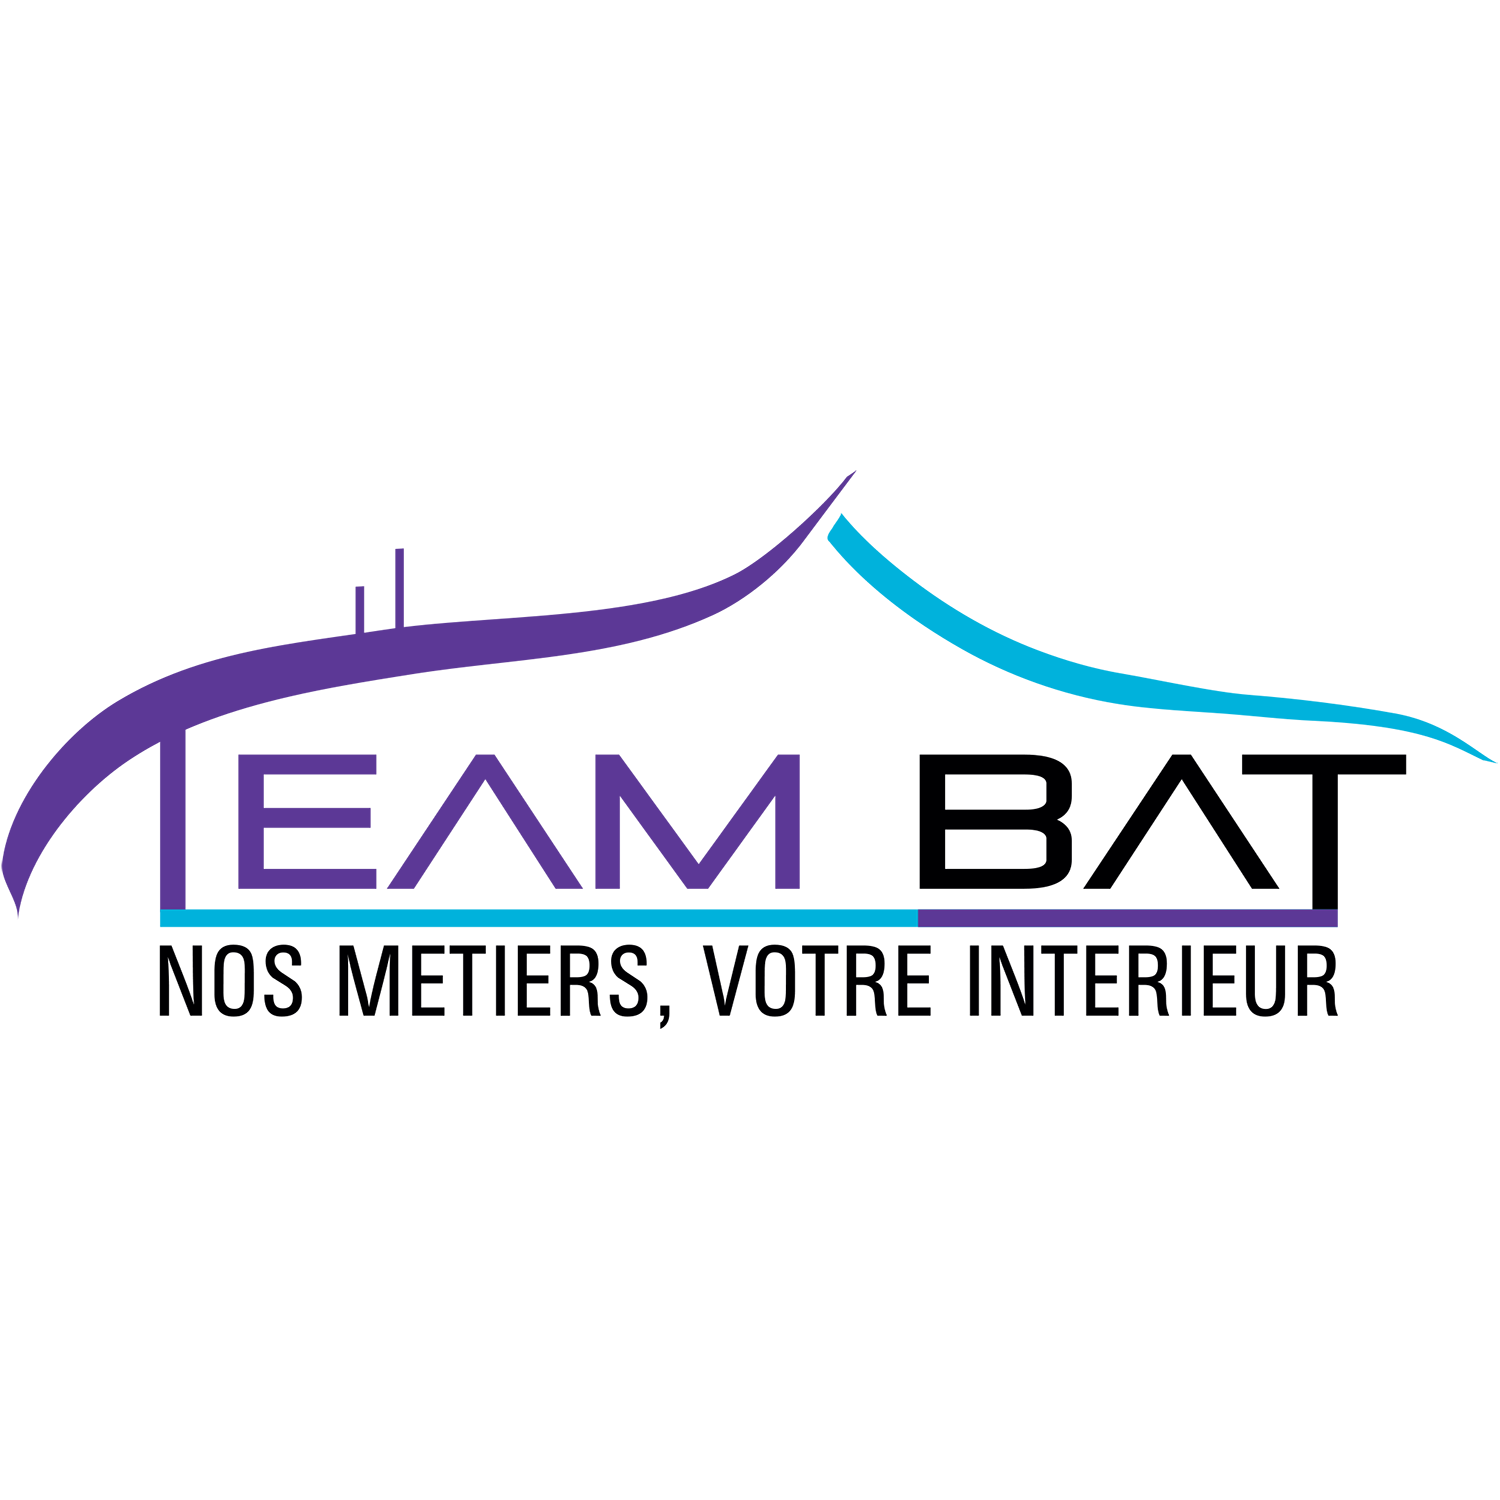 https://www.asfontonne-antibes.com/wp-content/uploads/2020/02/team-bat.png